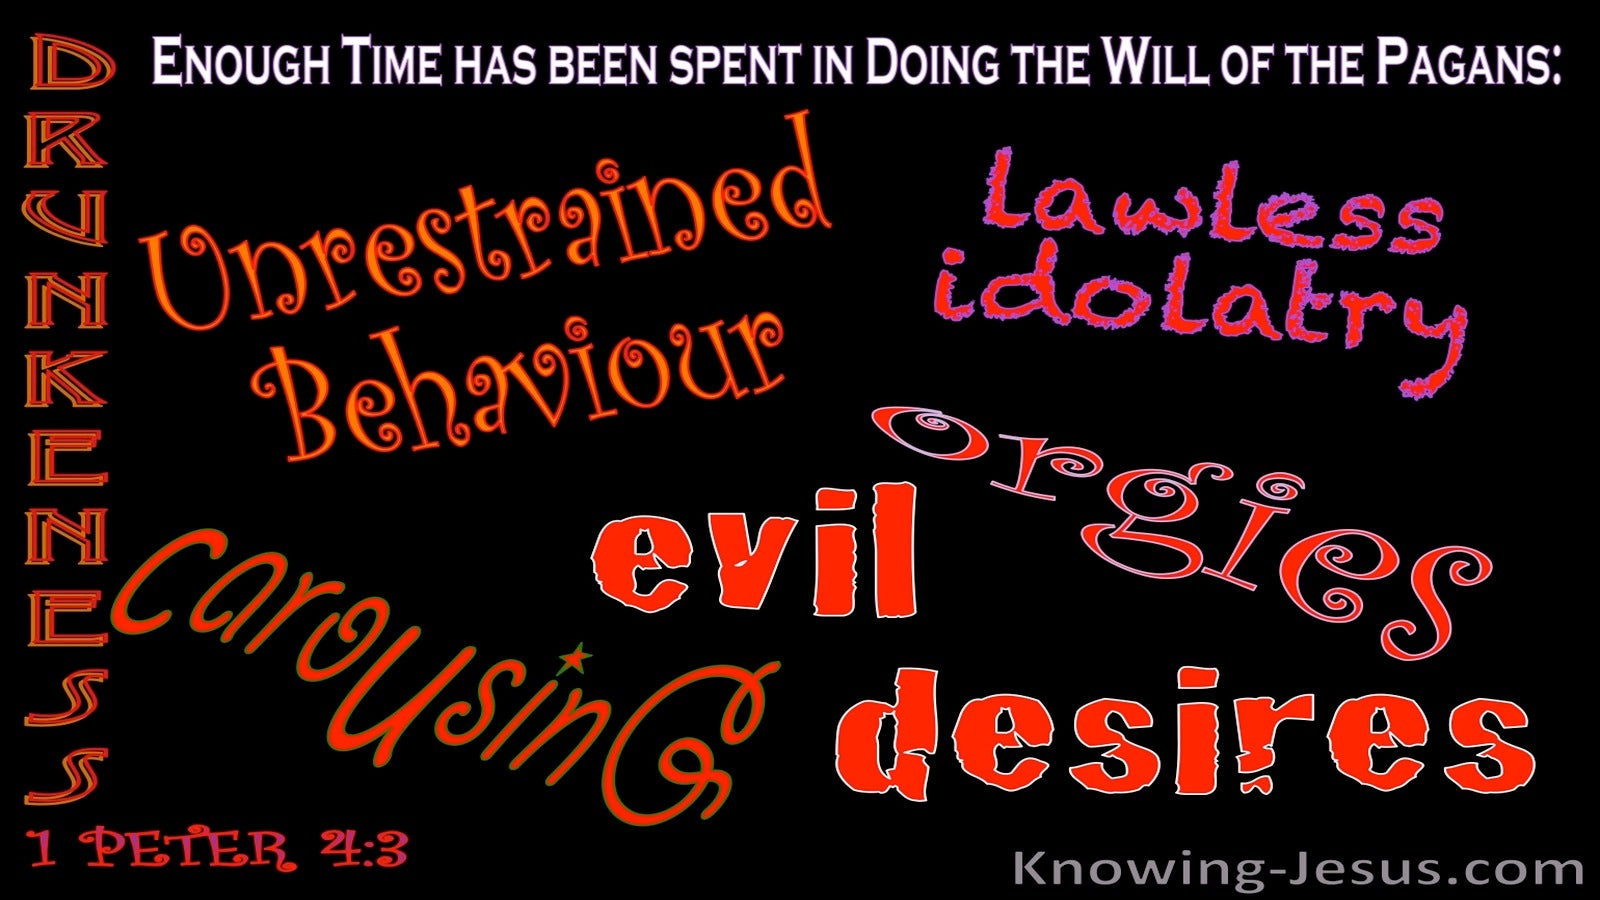 1 Peter 4:4 Enough Time Spent On Unrestrained Behaviour (red)